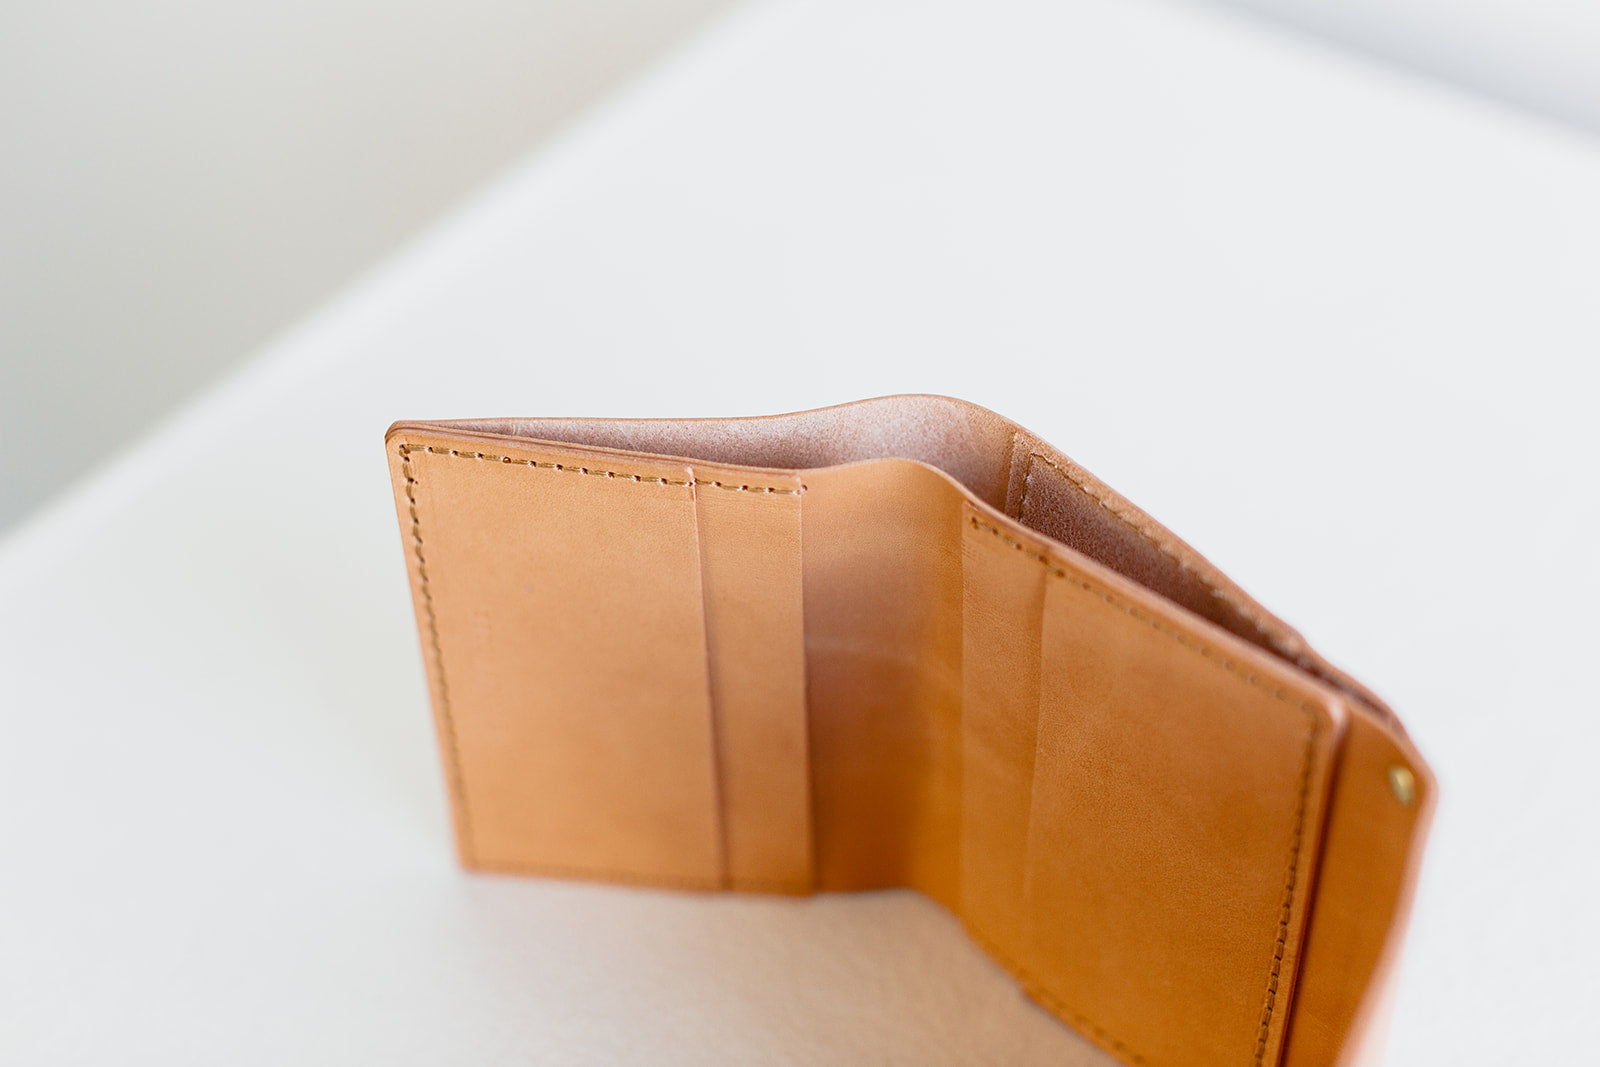 MINI WALLET - UNDYED NATURAL